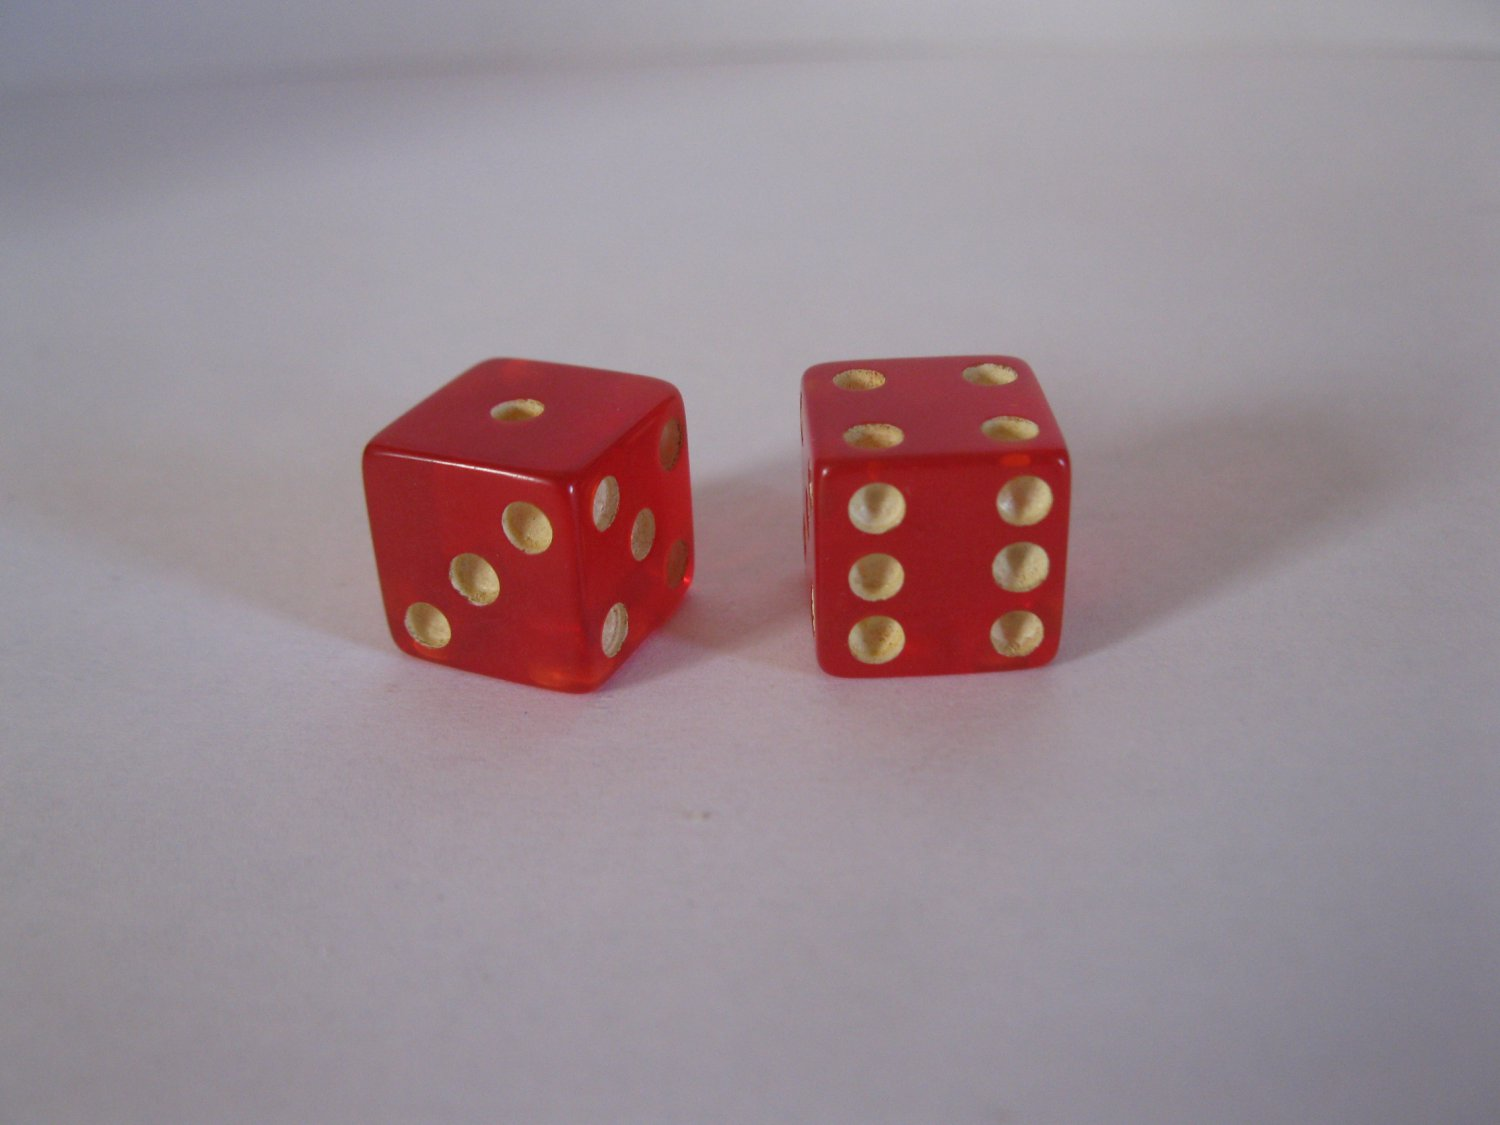 1965 Careers Board Game Piece: Red Dice Set